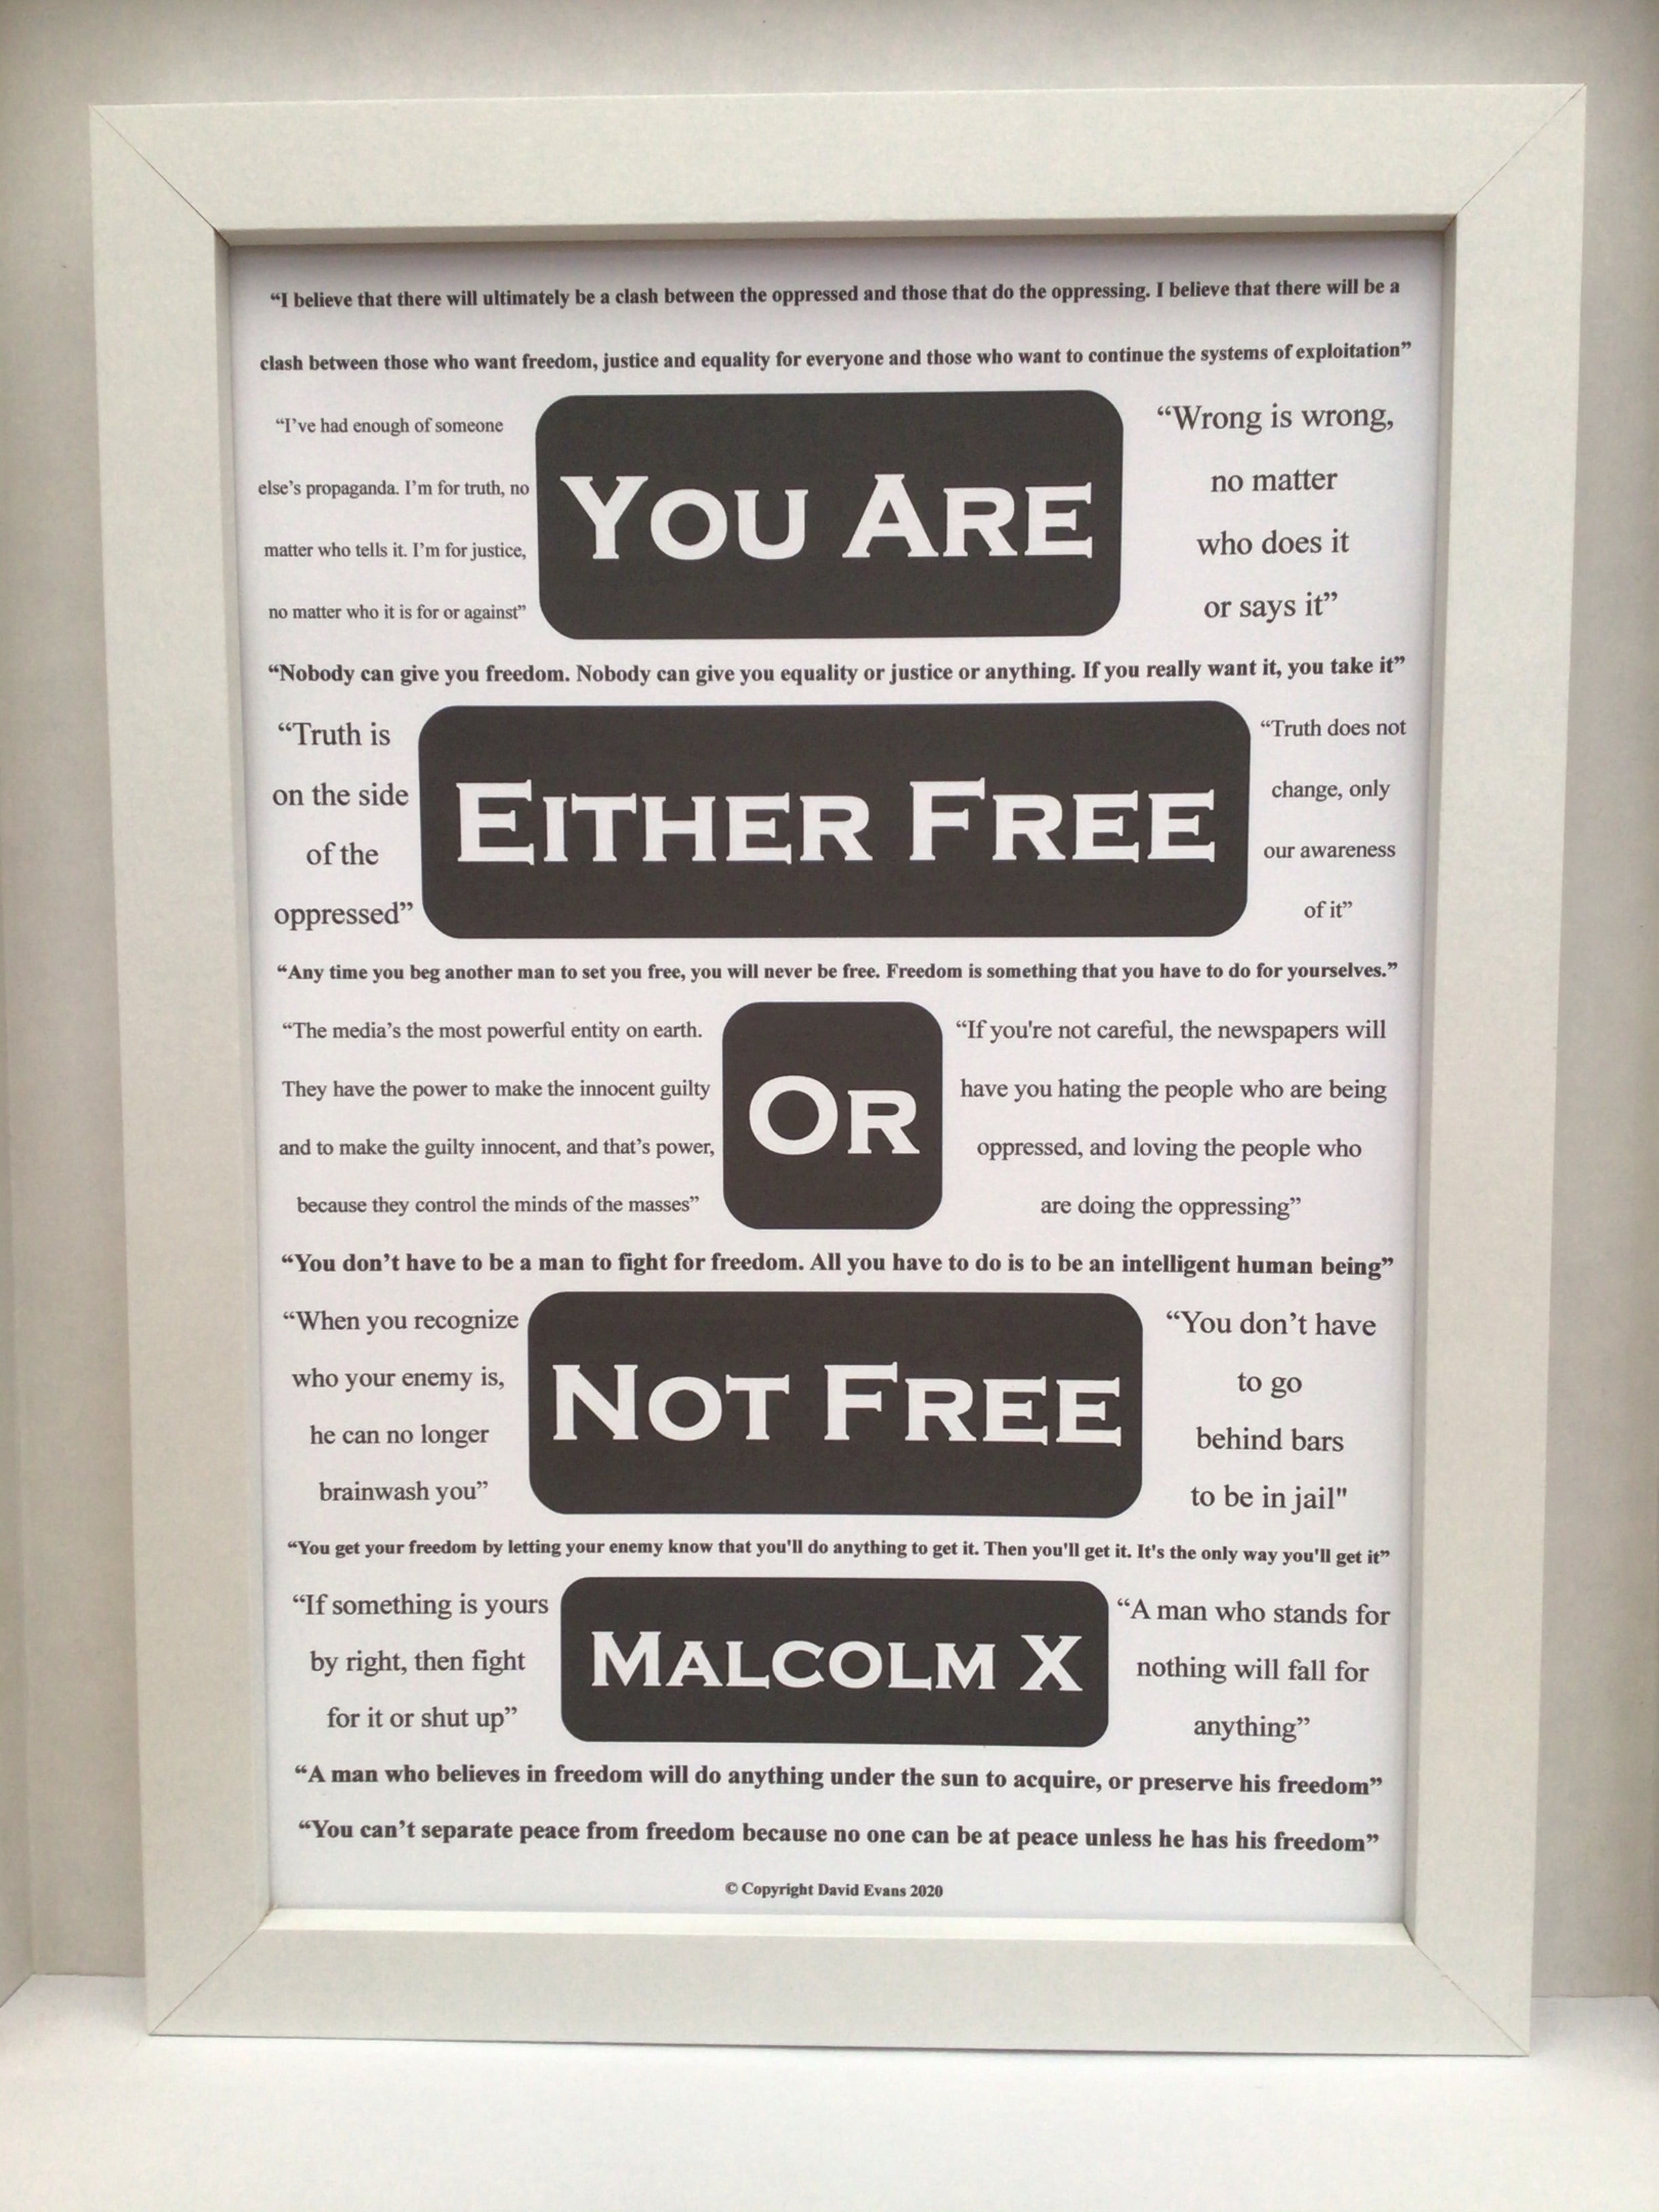 Inspirational poster featuring 18 relevant Malcolm X quotes about truth, freedom and justice